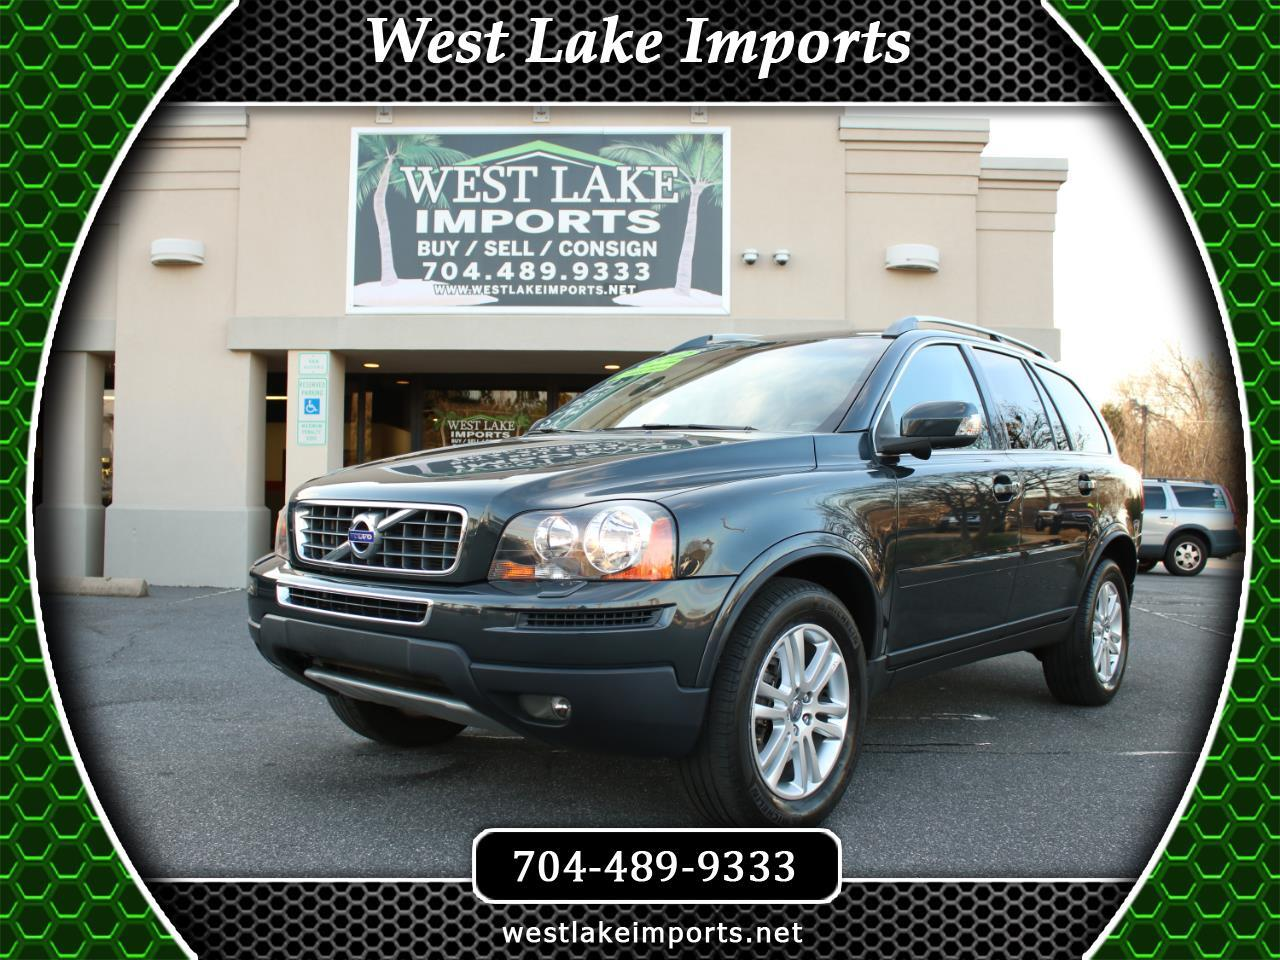 2012 Volvo XC90 AWD 4dr I6 w/Sunroof/3rd Row